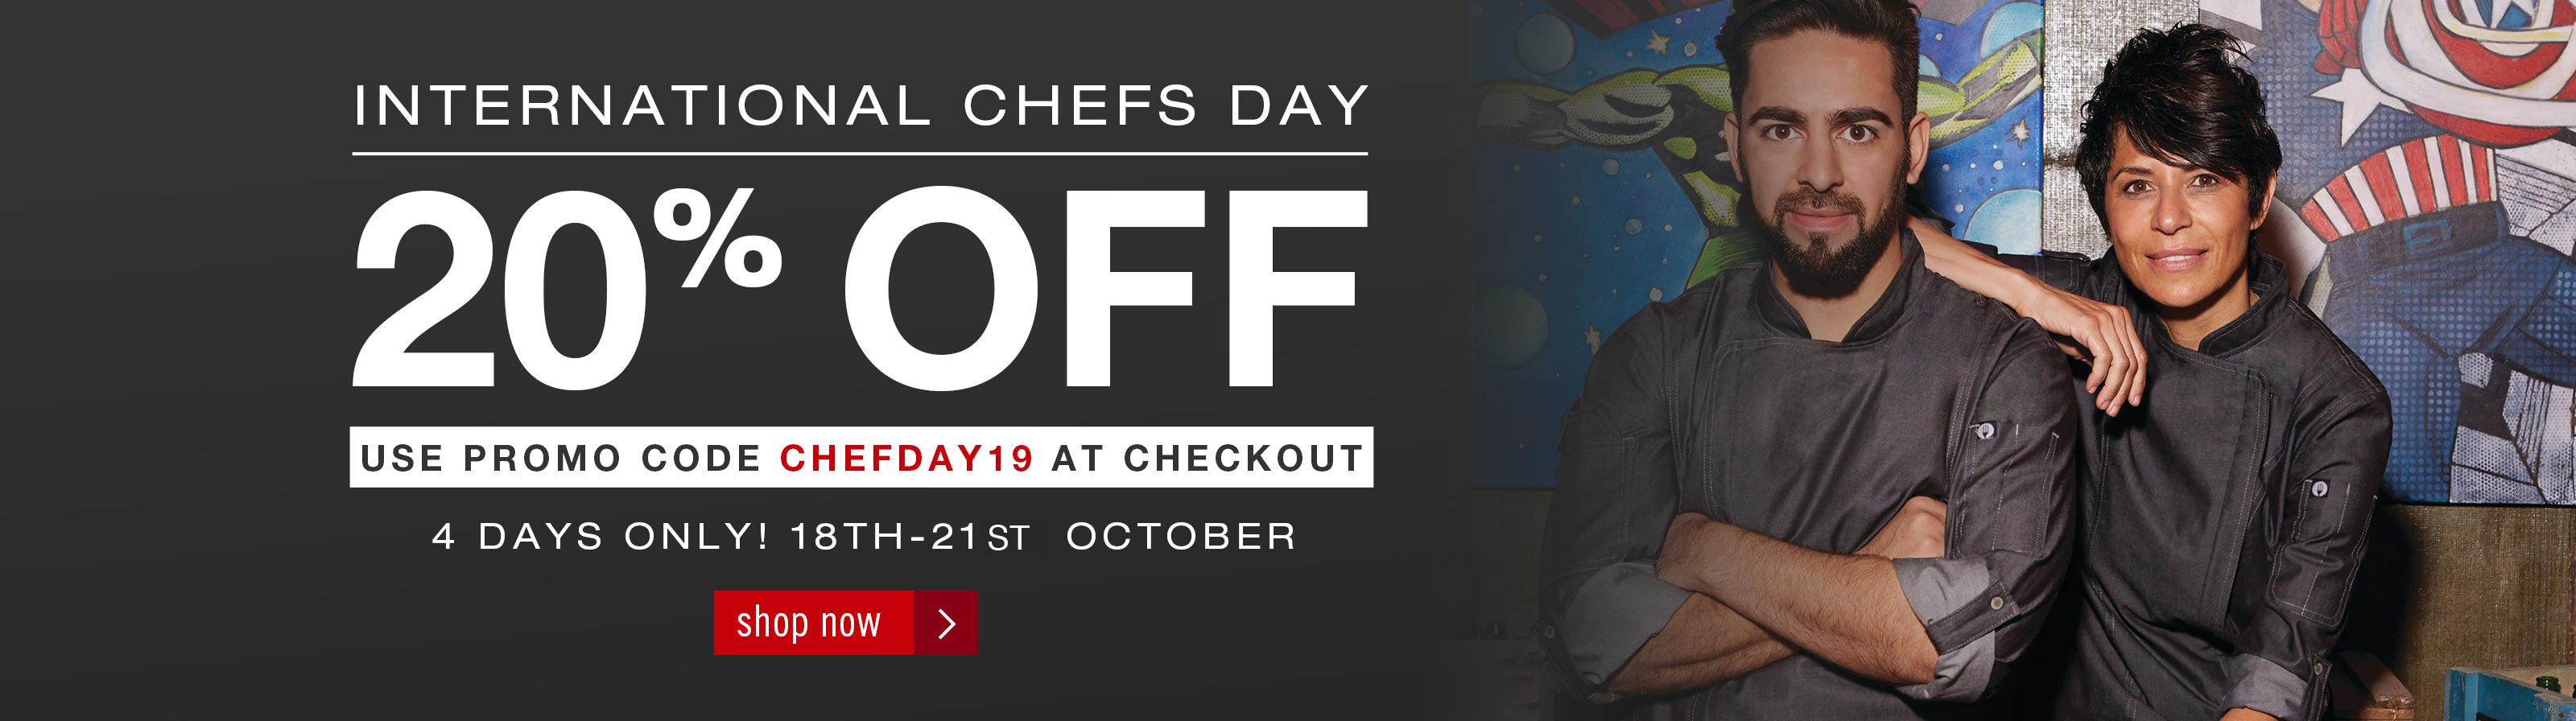 International Chefs Day 20% Off